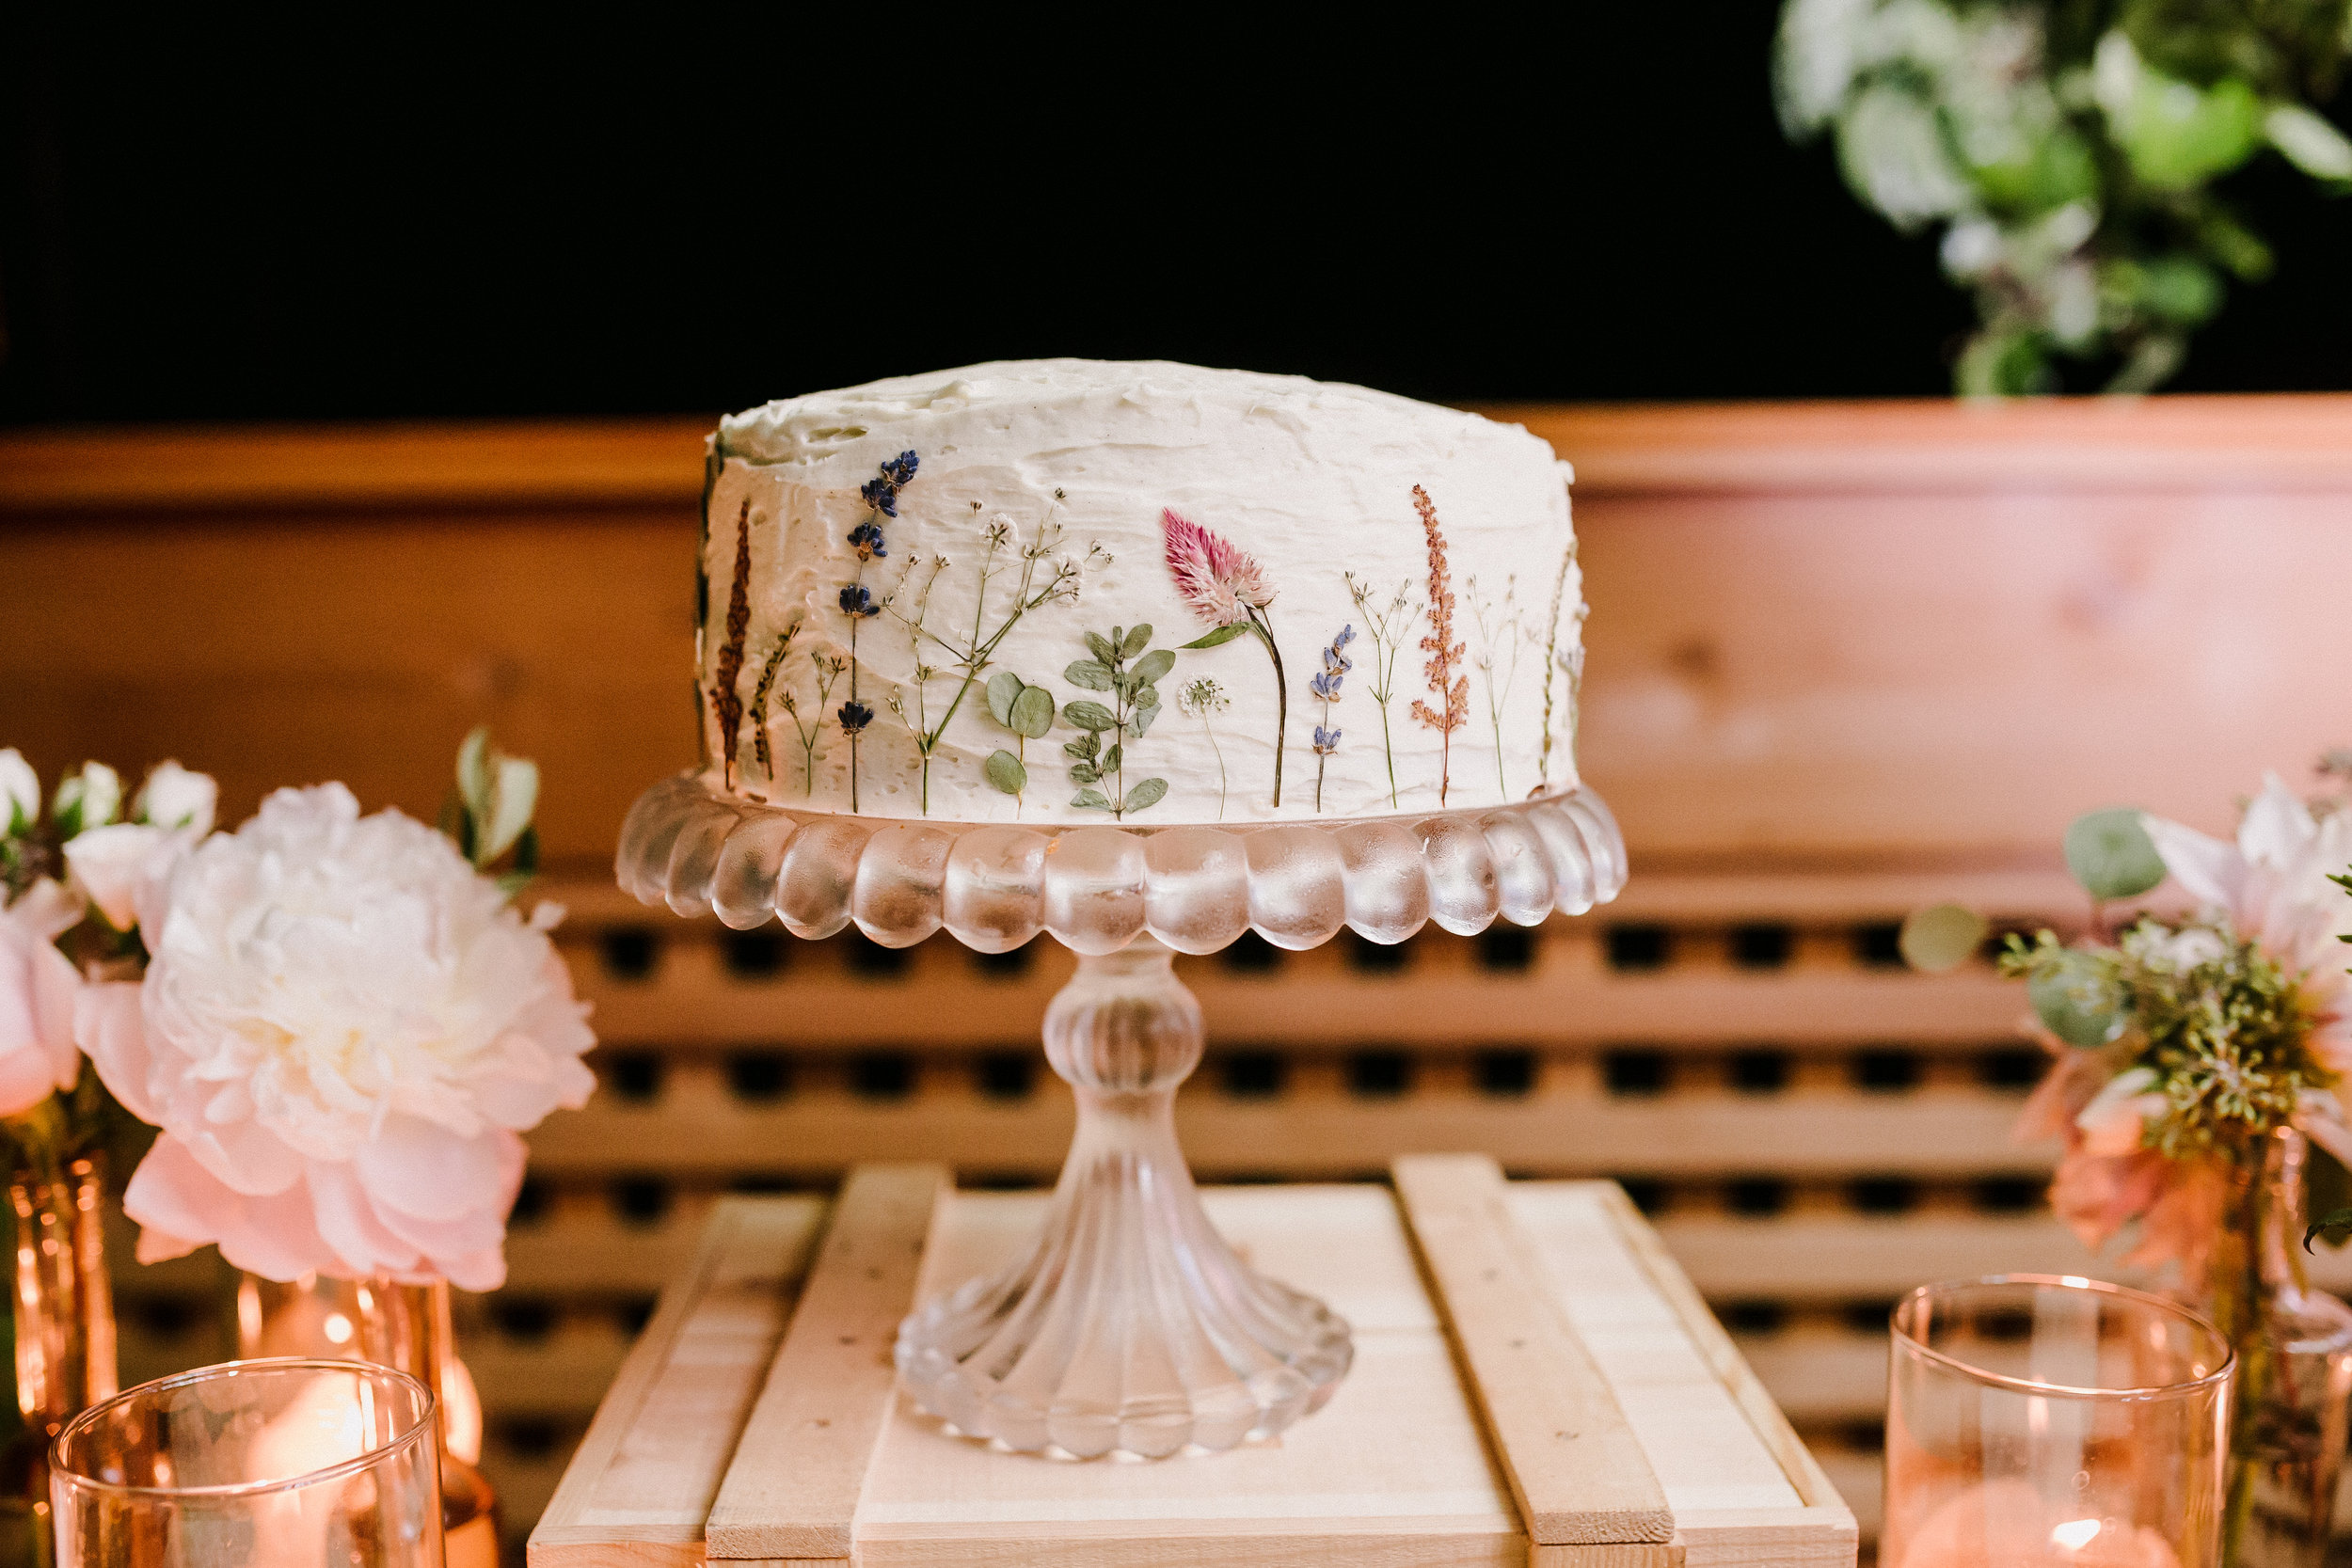 dried-flower-cake-backyard-wedding-dayton-wedding-planner.jpg